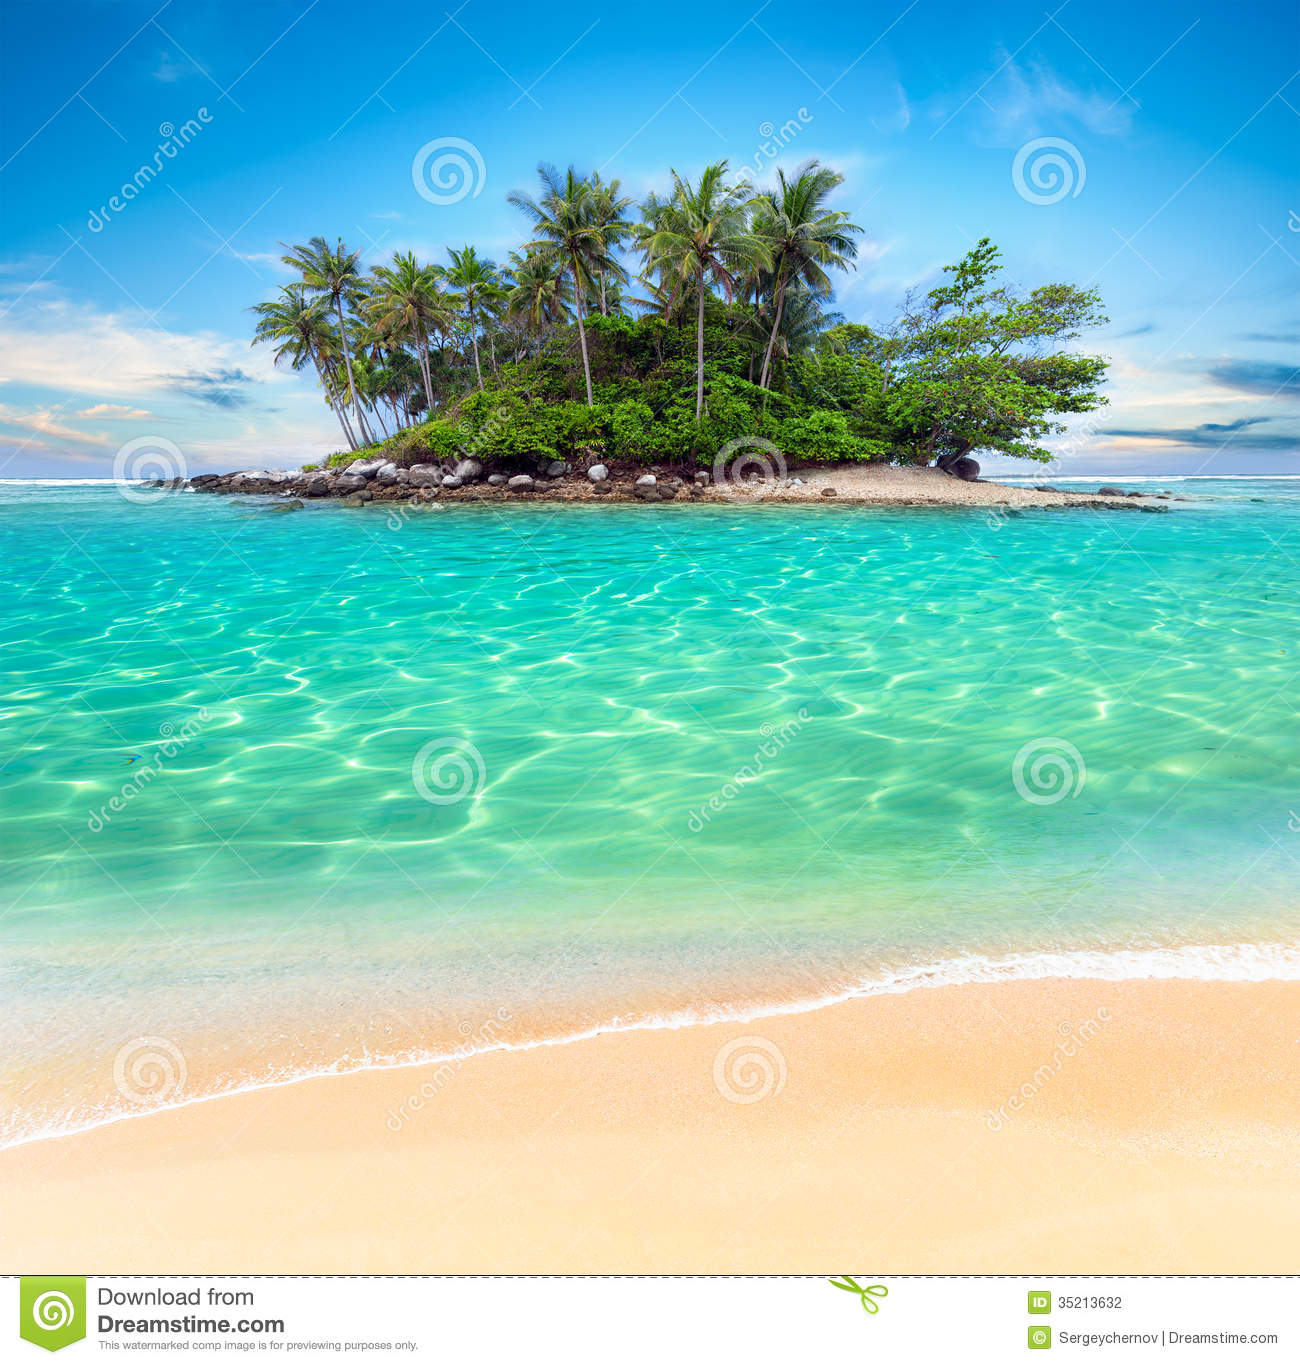 Beach Island: Tropical Island And Sand Beach Exotic Travel Background